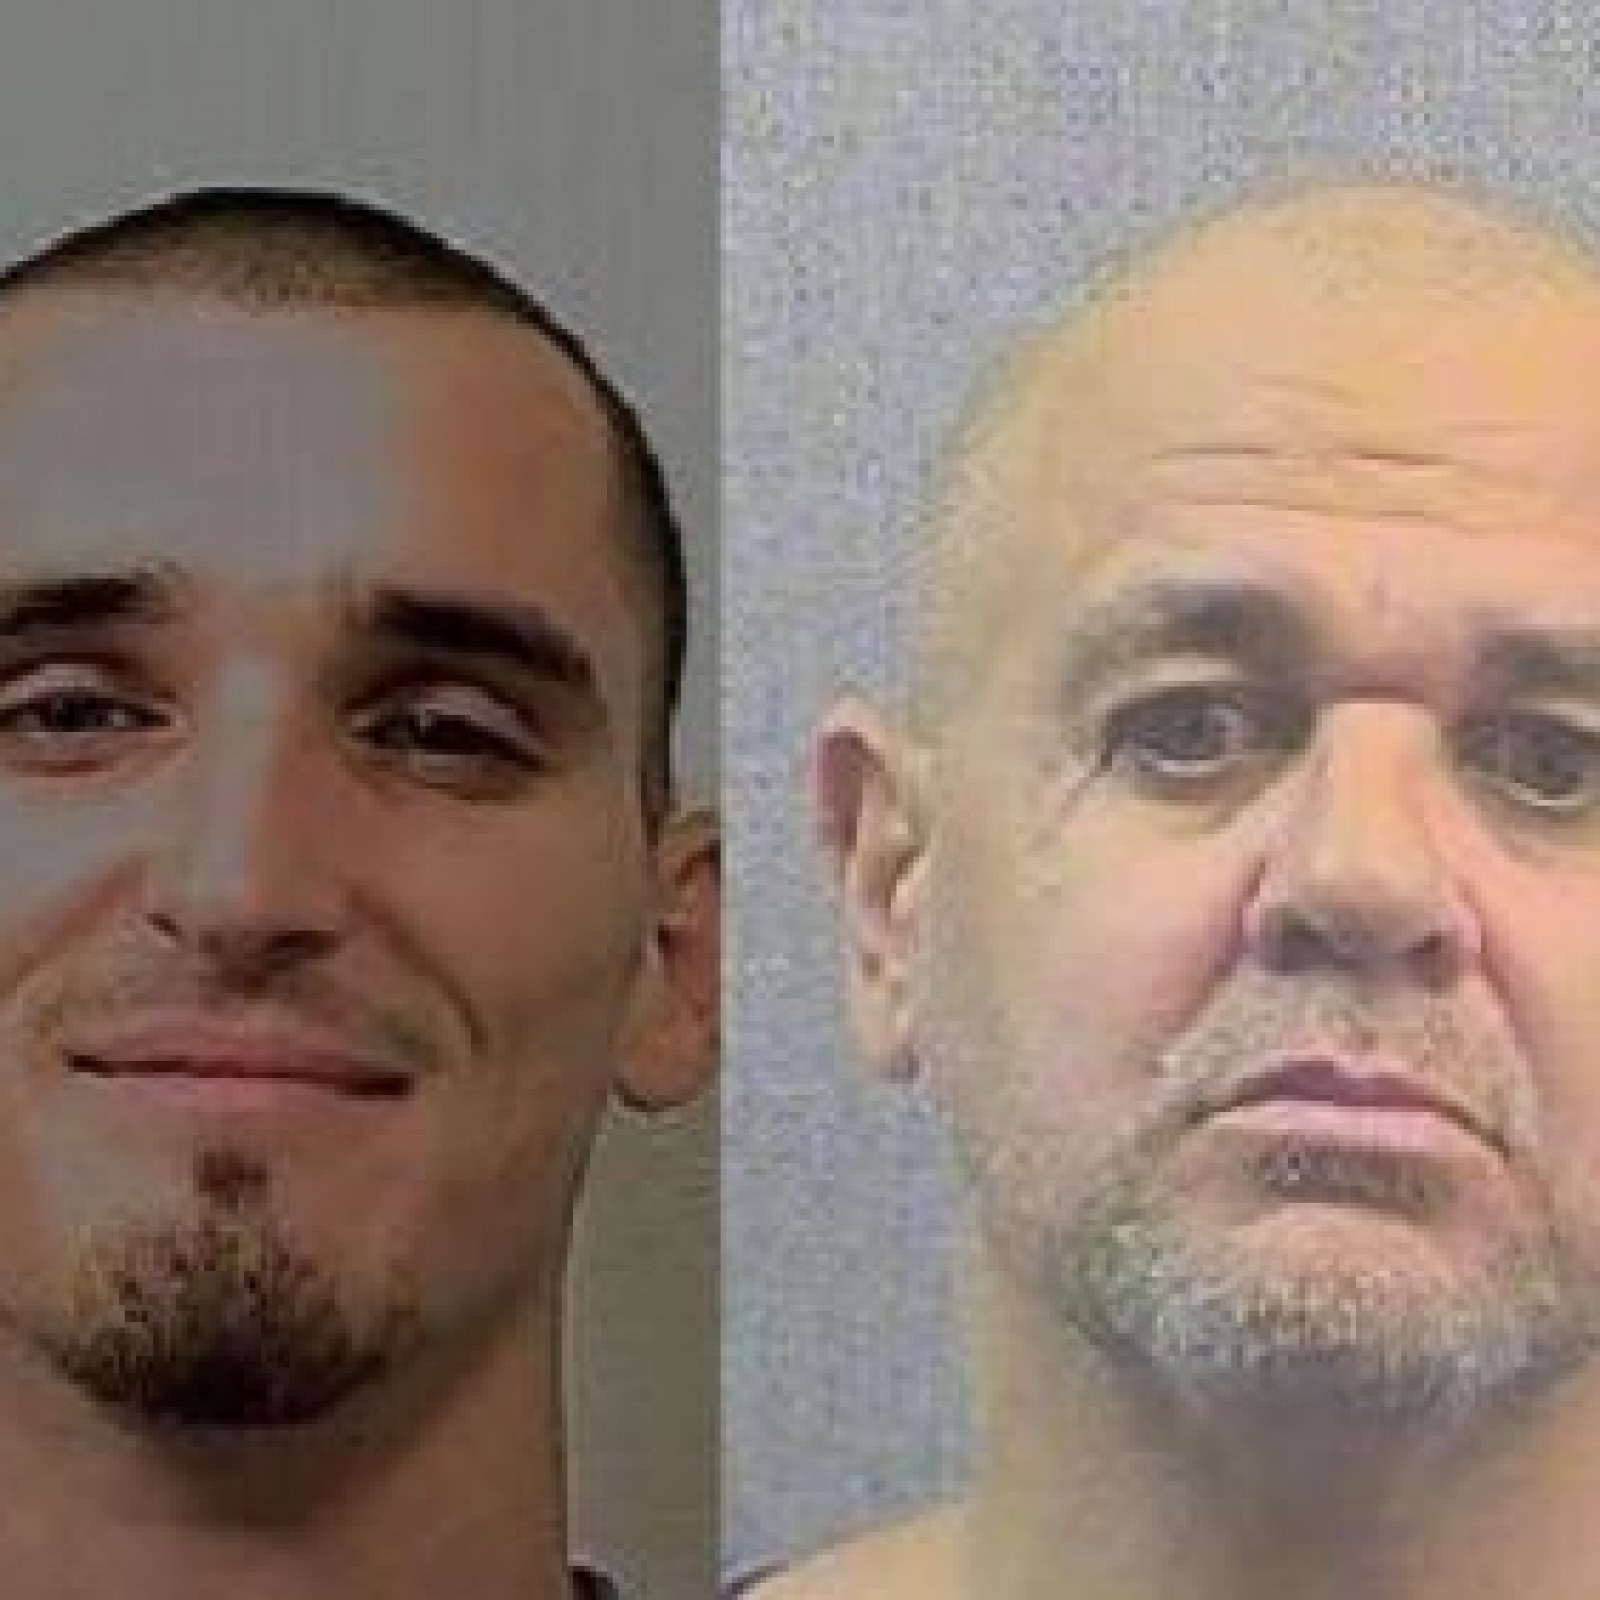 California Sees Two Inmates Escape Prison In Space of Just